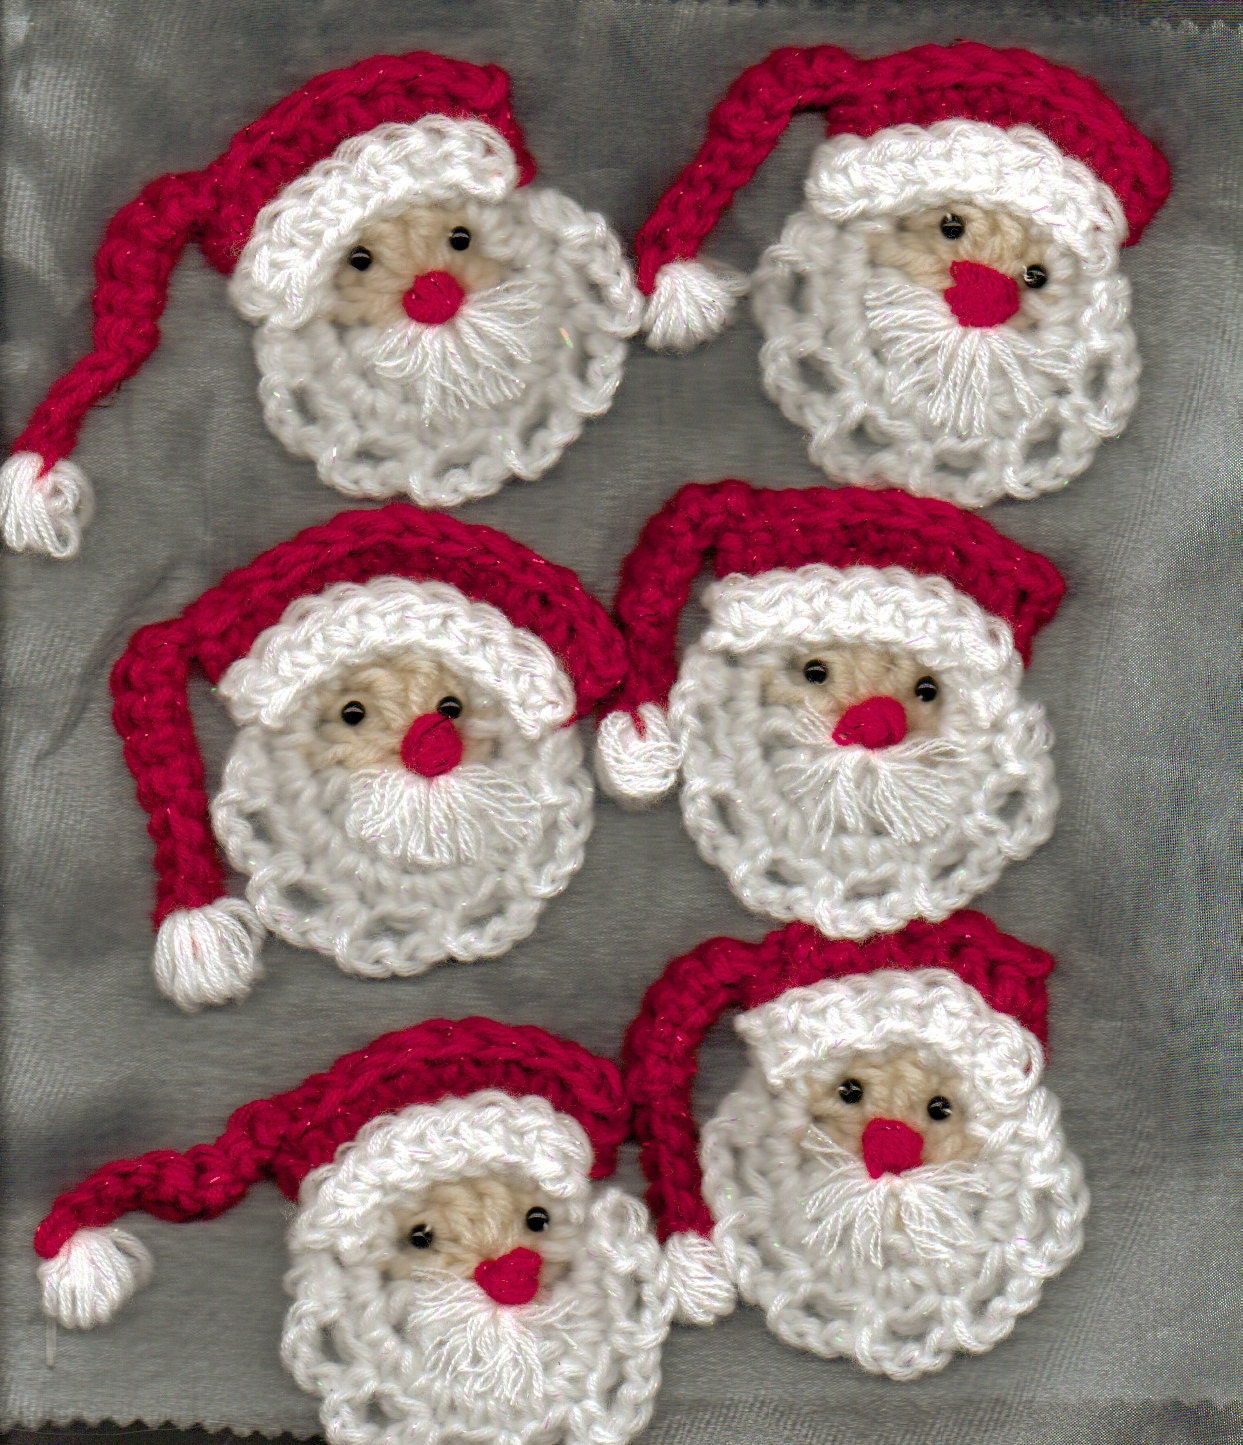 Christmas Crochet Patterns : Free Christmas Crochet Pattern Link Directory